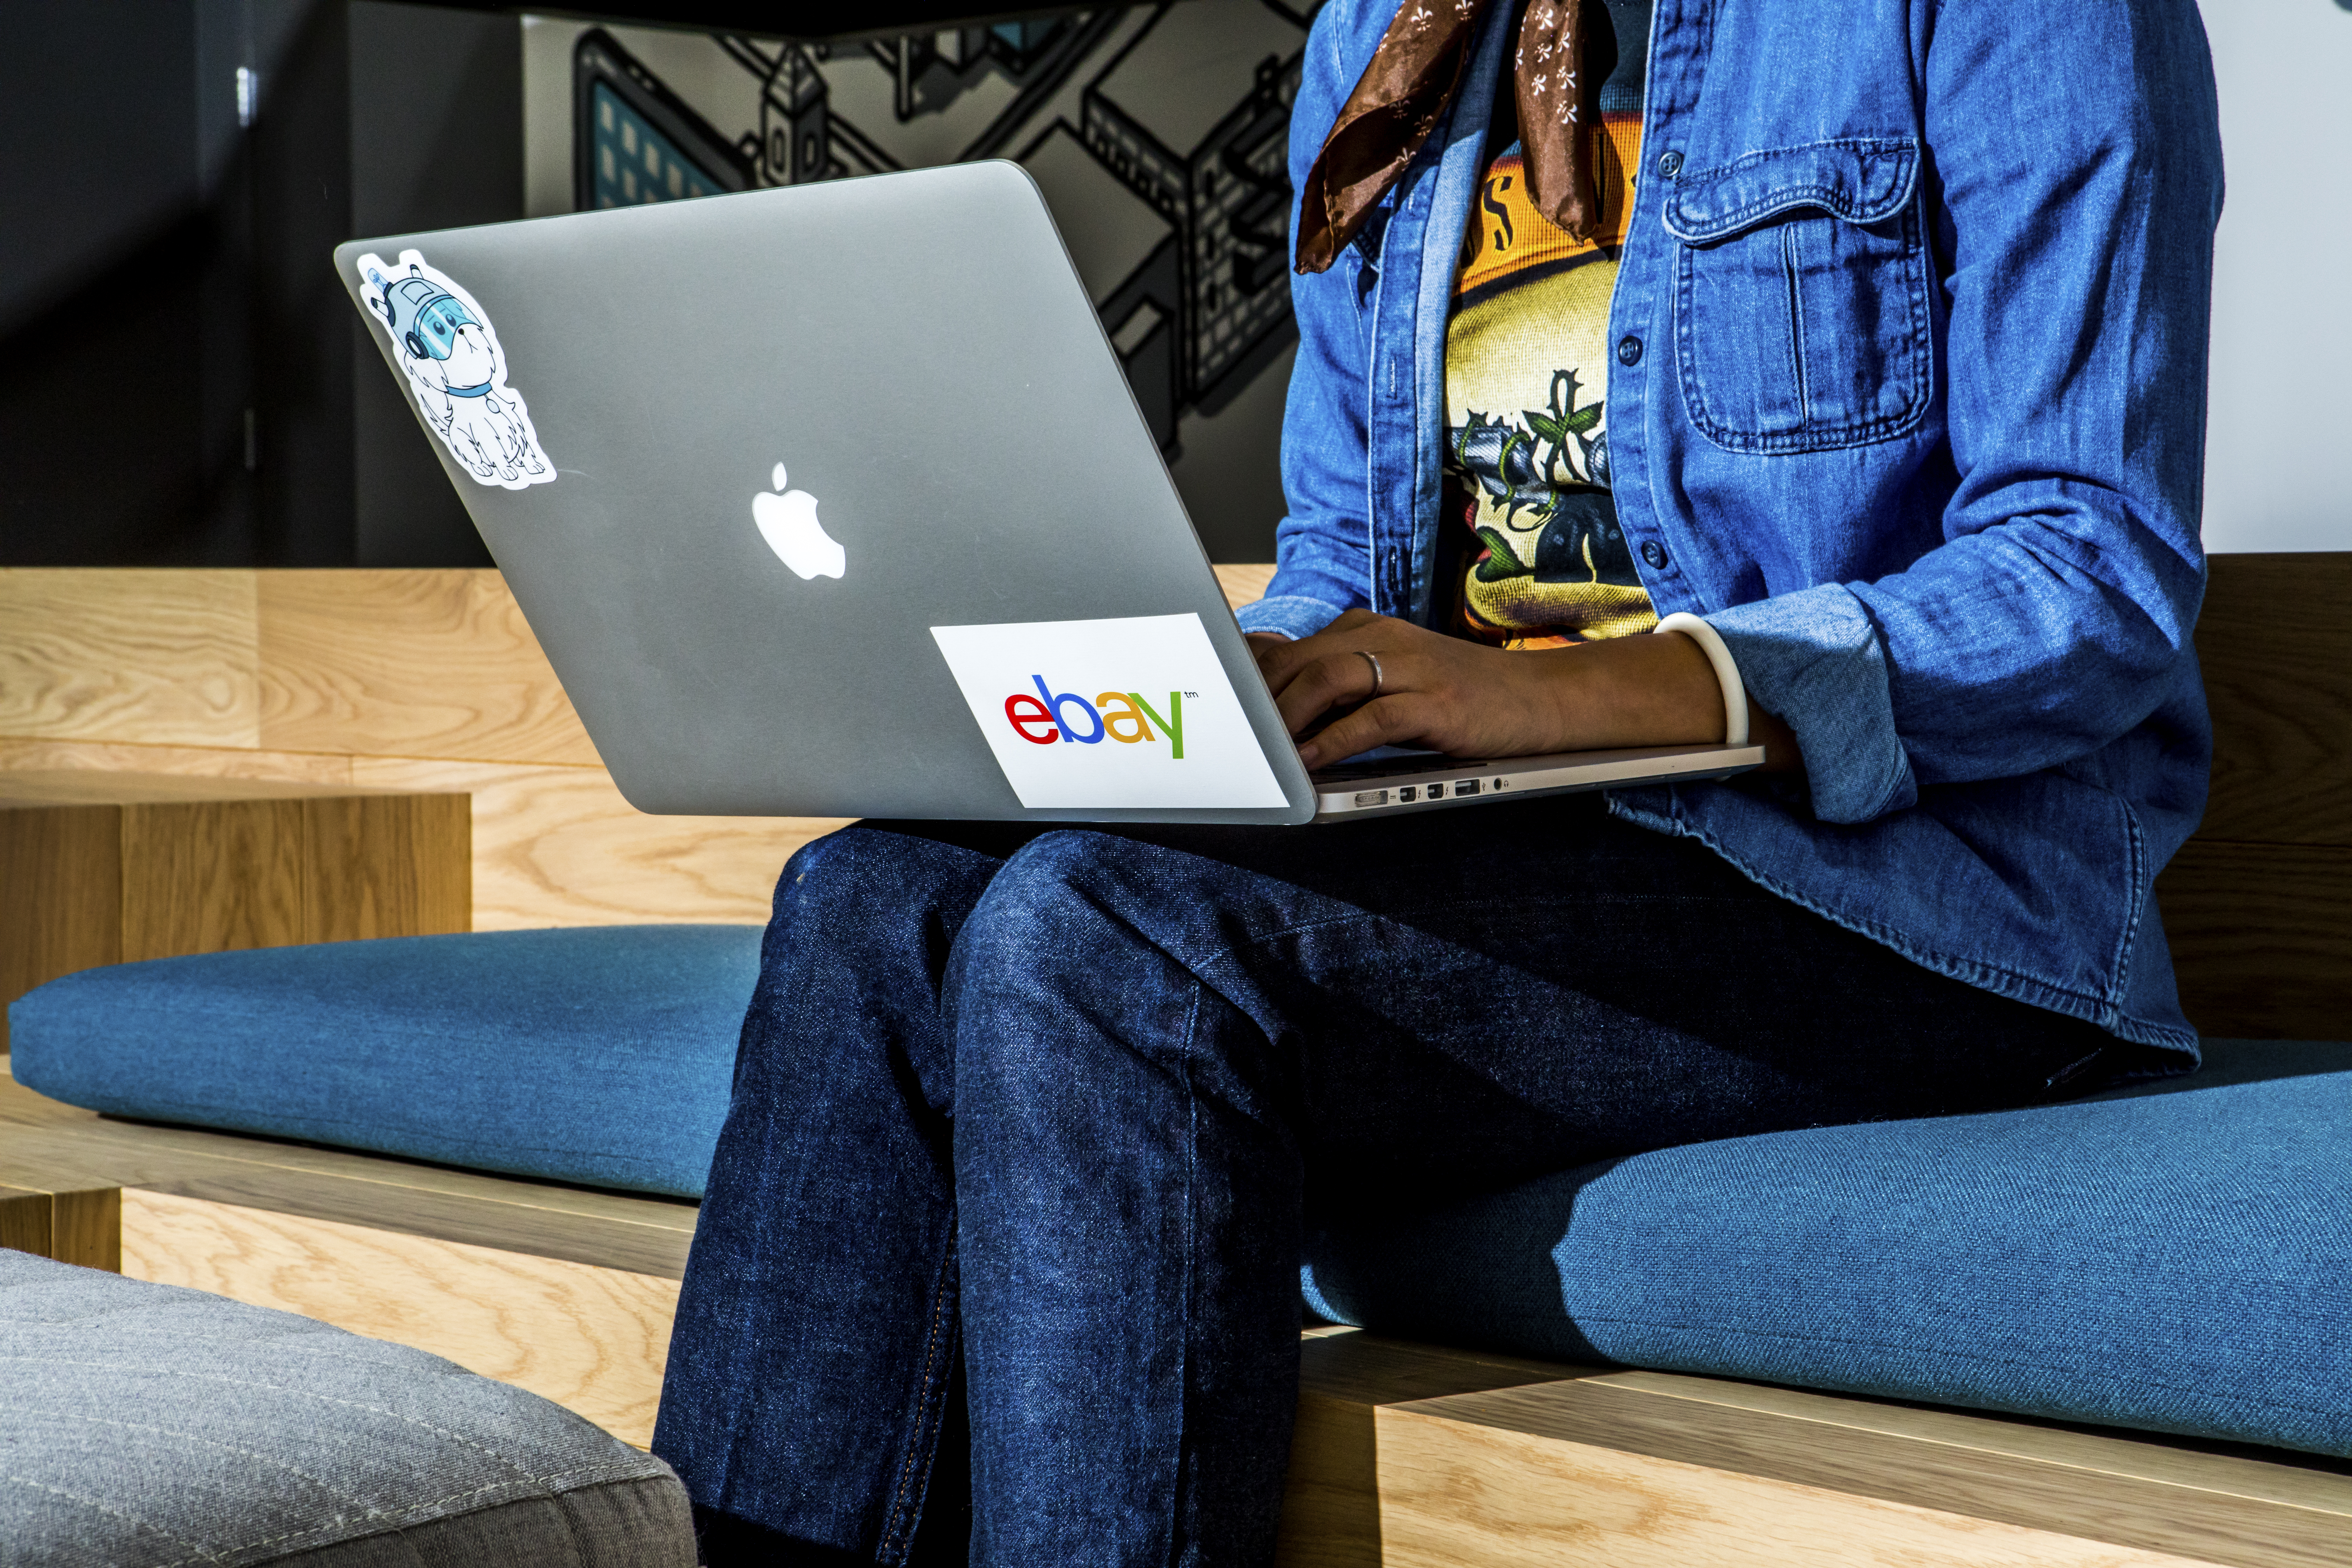 Woman sits with laptop on her lap. The laptop has an eBay sticker.